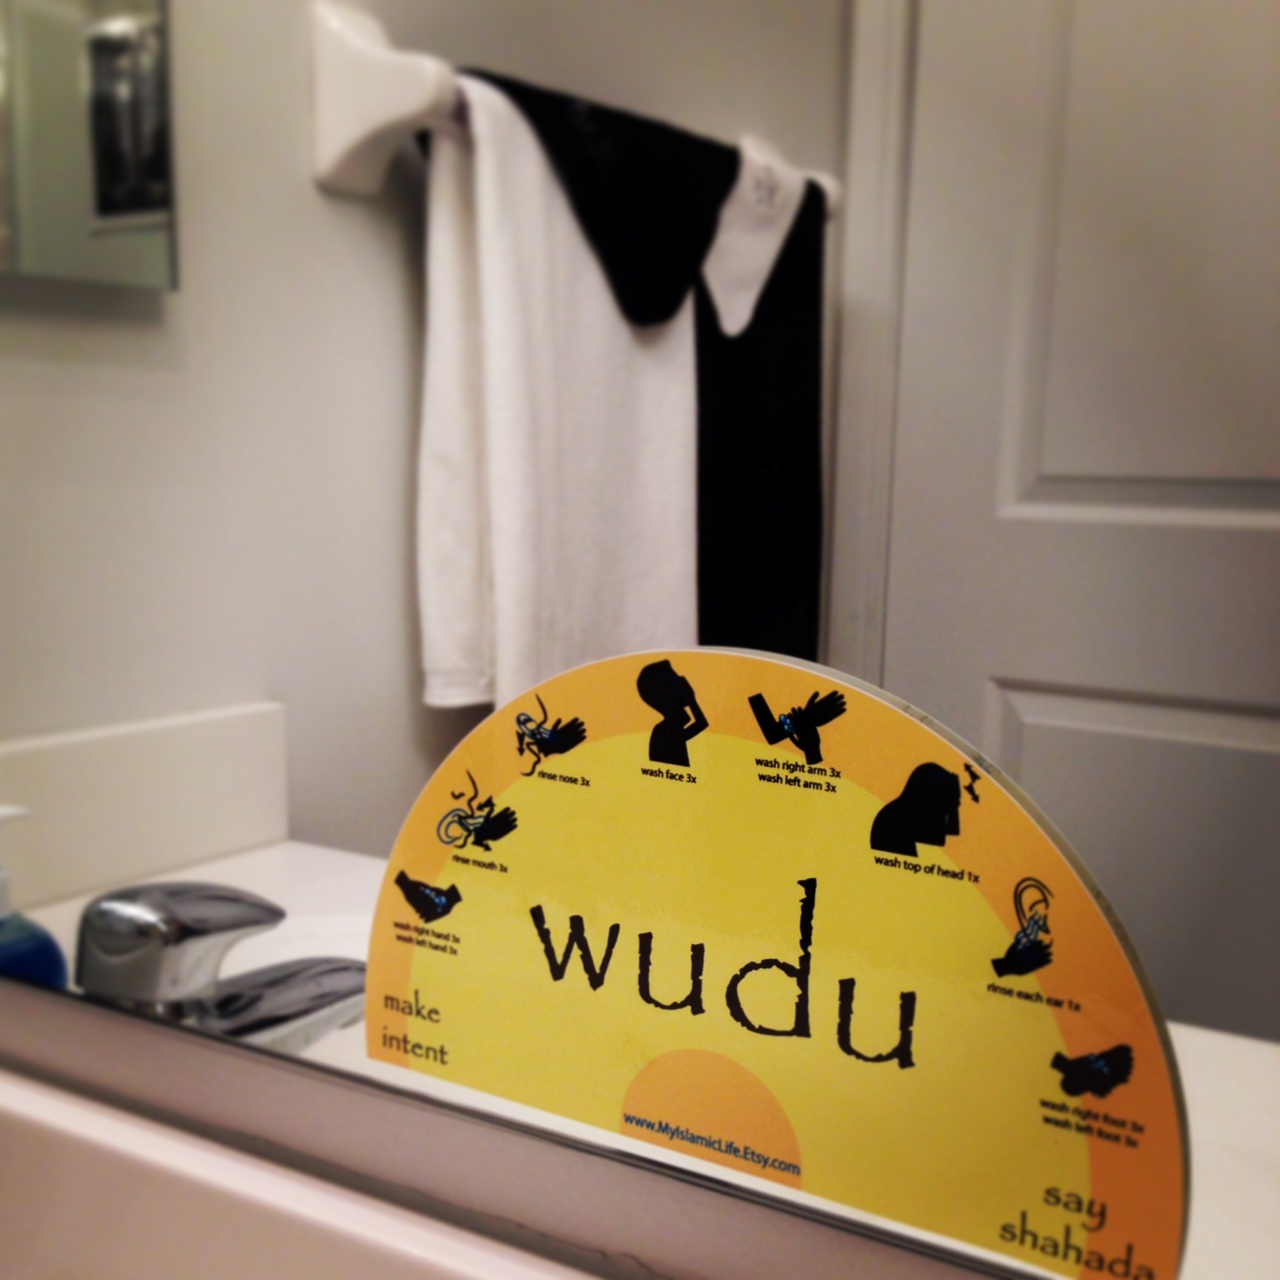 The Wudu Cling